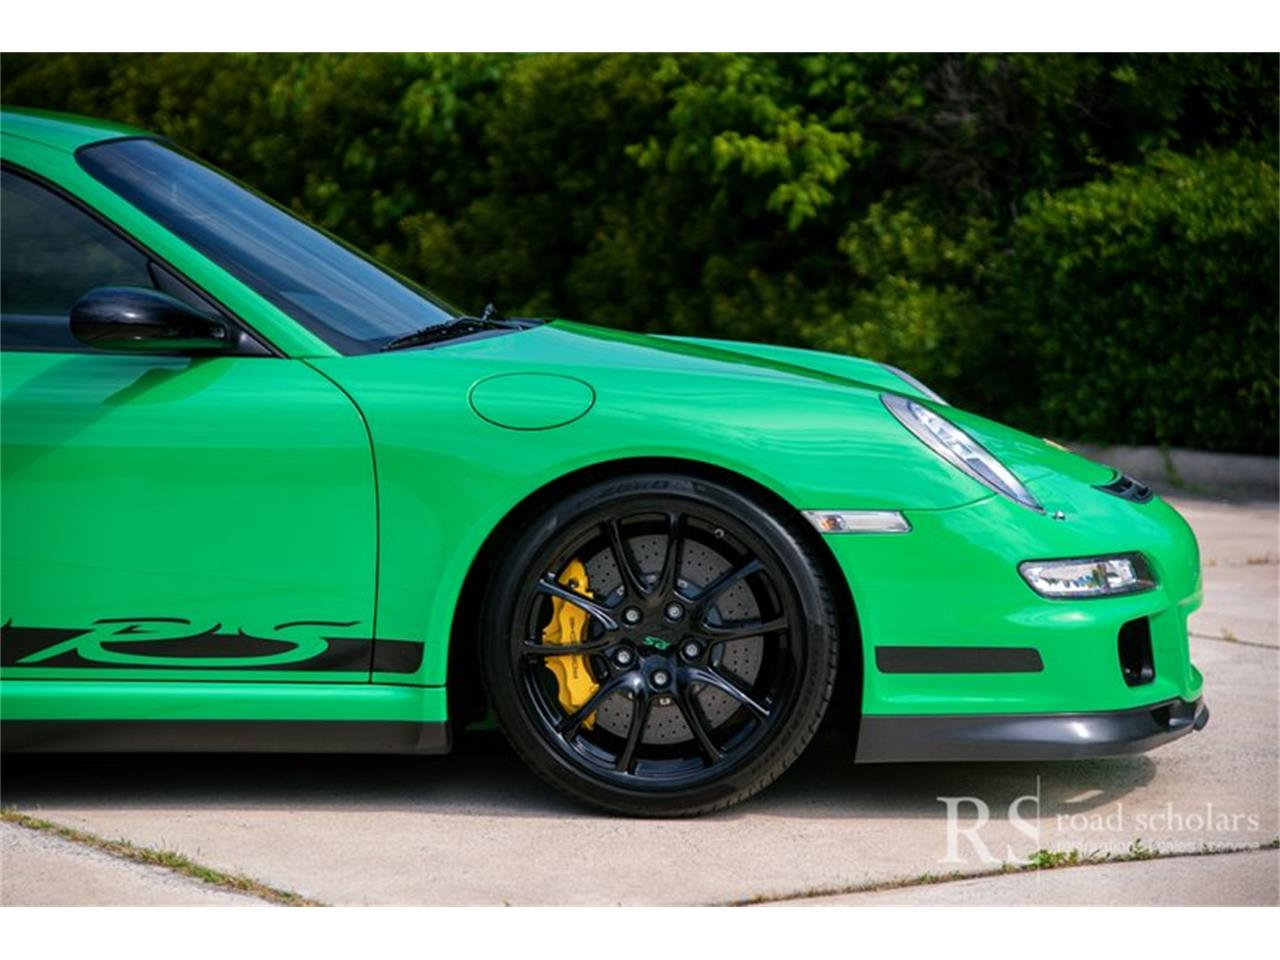 Large Picture of '07 Porsche 911 located in Raleigh North Carolina - $265,000.00 Offered by Road Scholars - QBH3